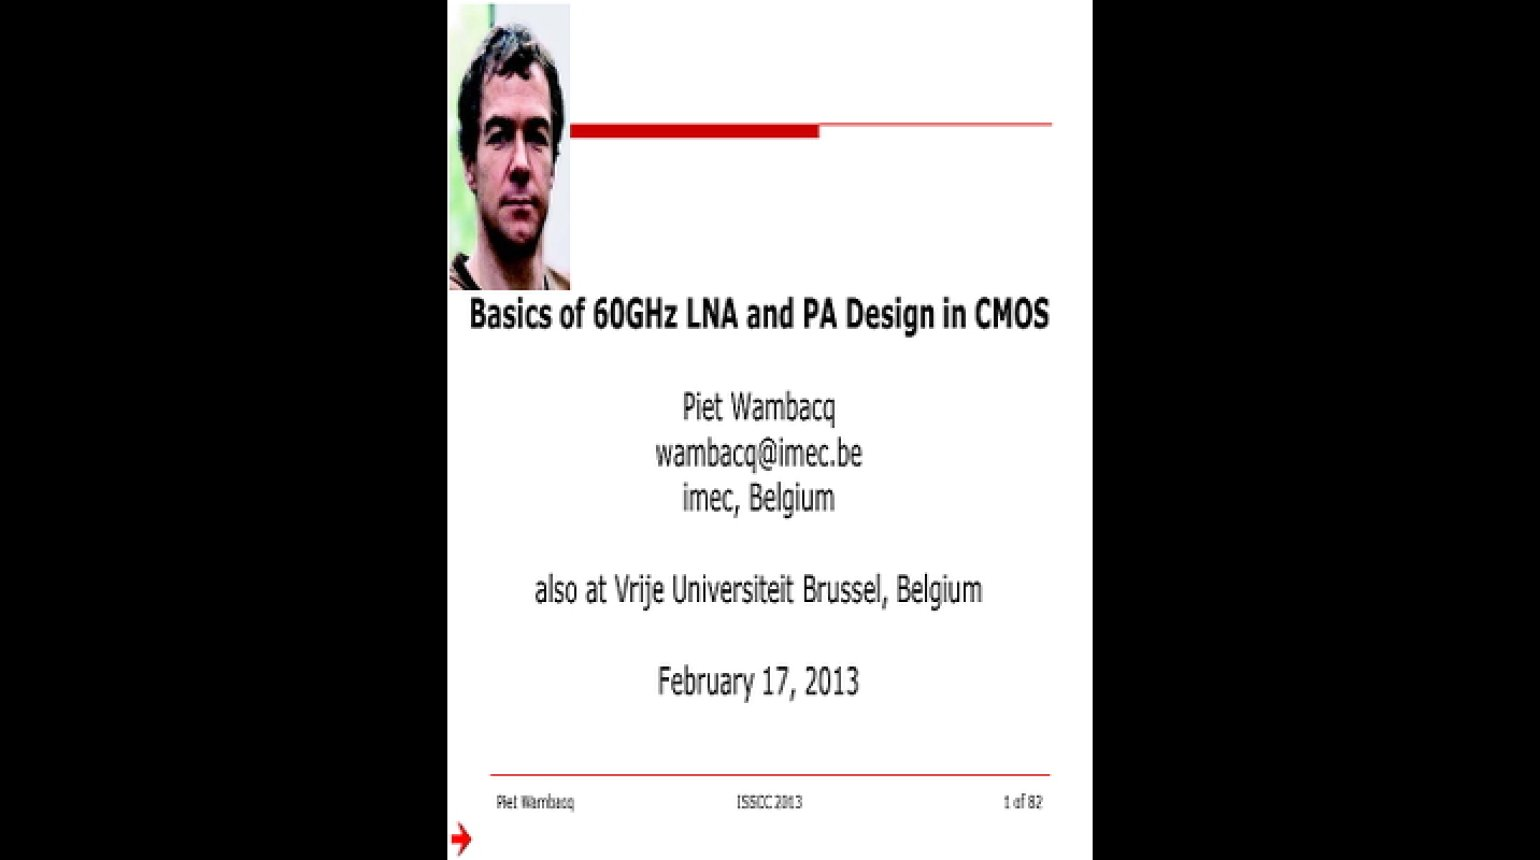 Basics of 60 GHz LNA and PA Design in CMOS Video